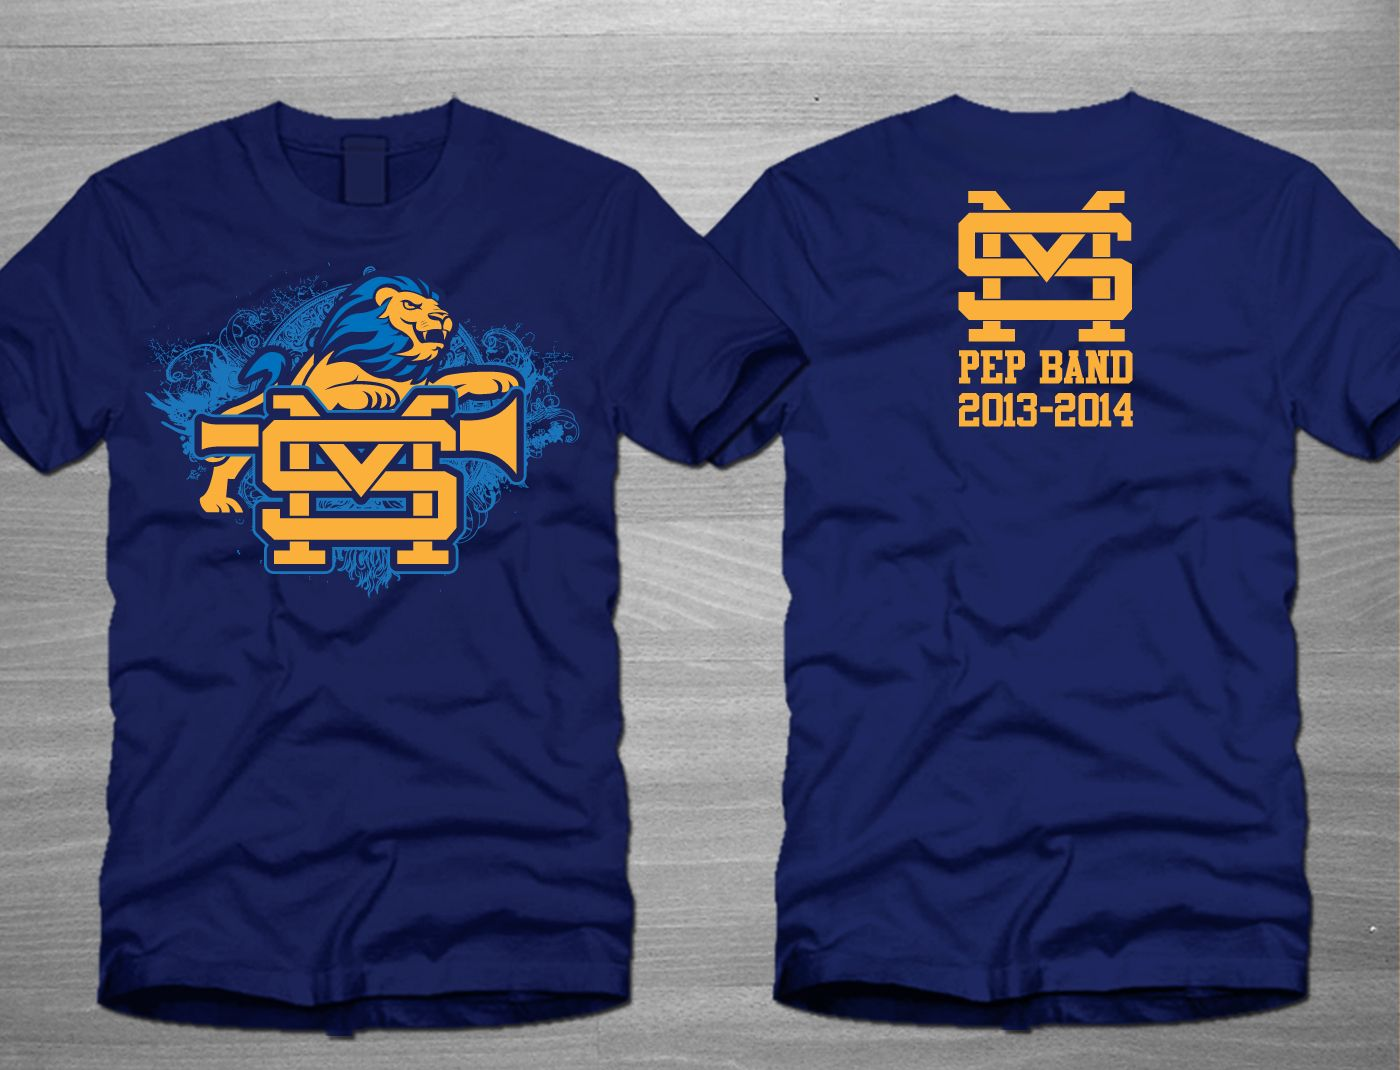 81adaf158 how to design a pep band t shirt - Google Search | Pep band shirts ...